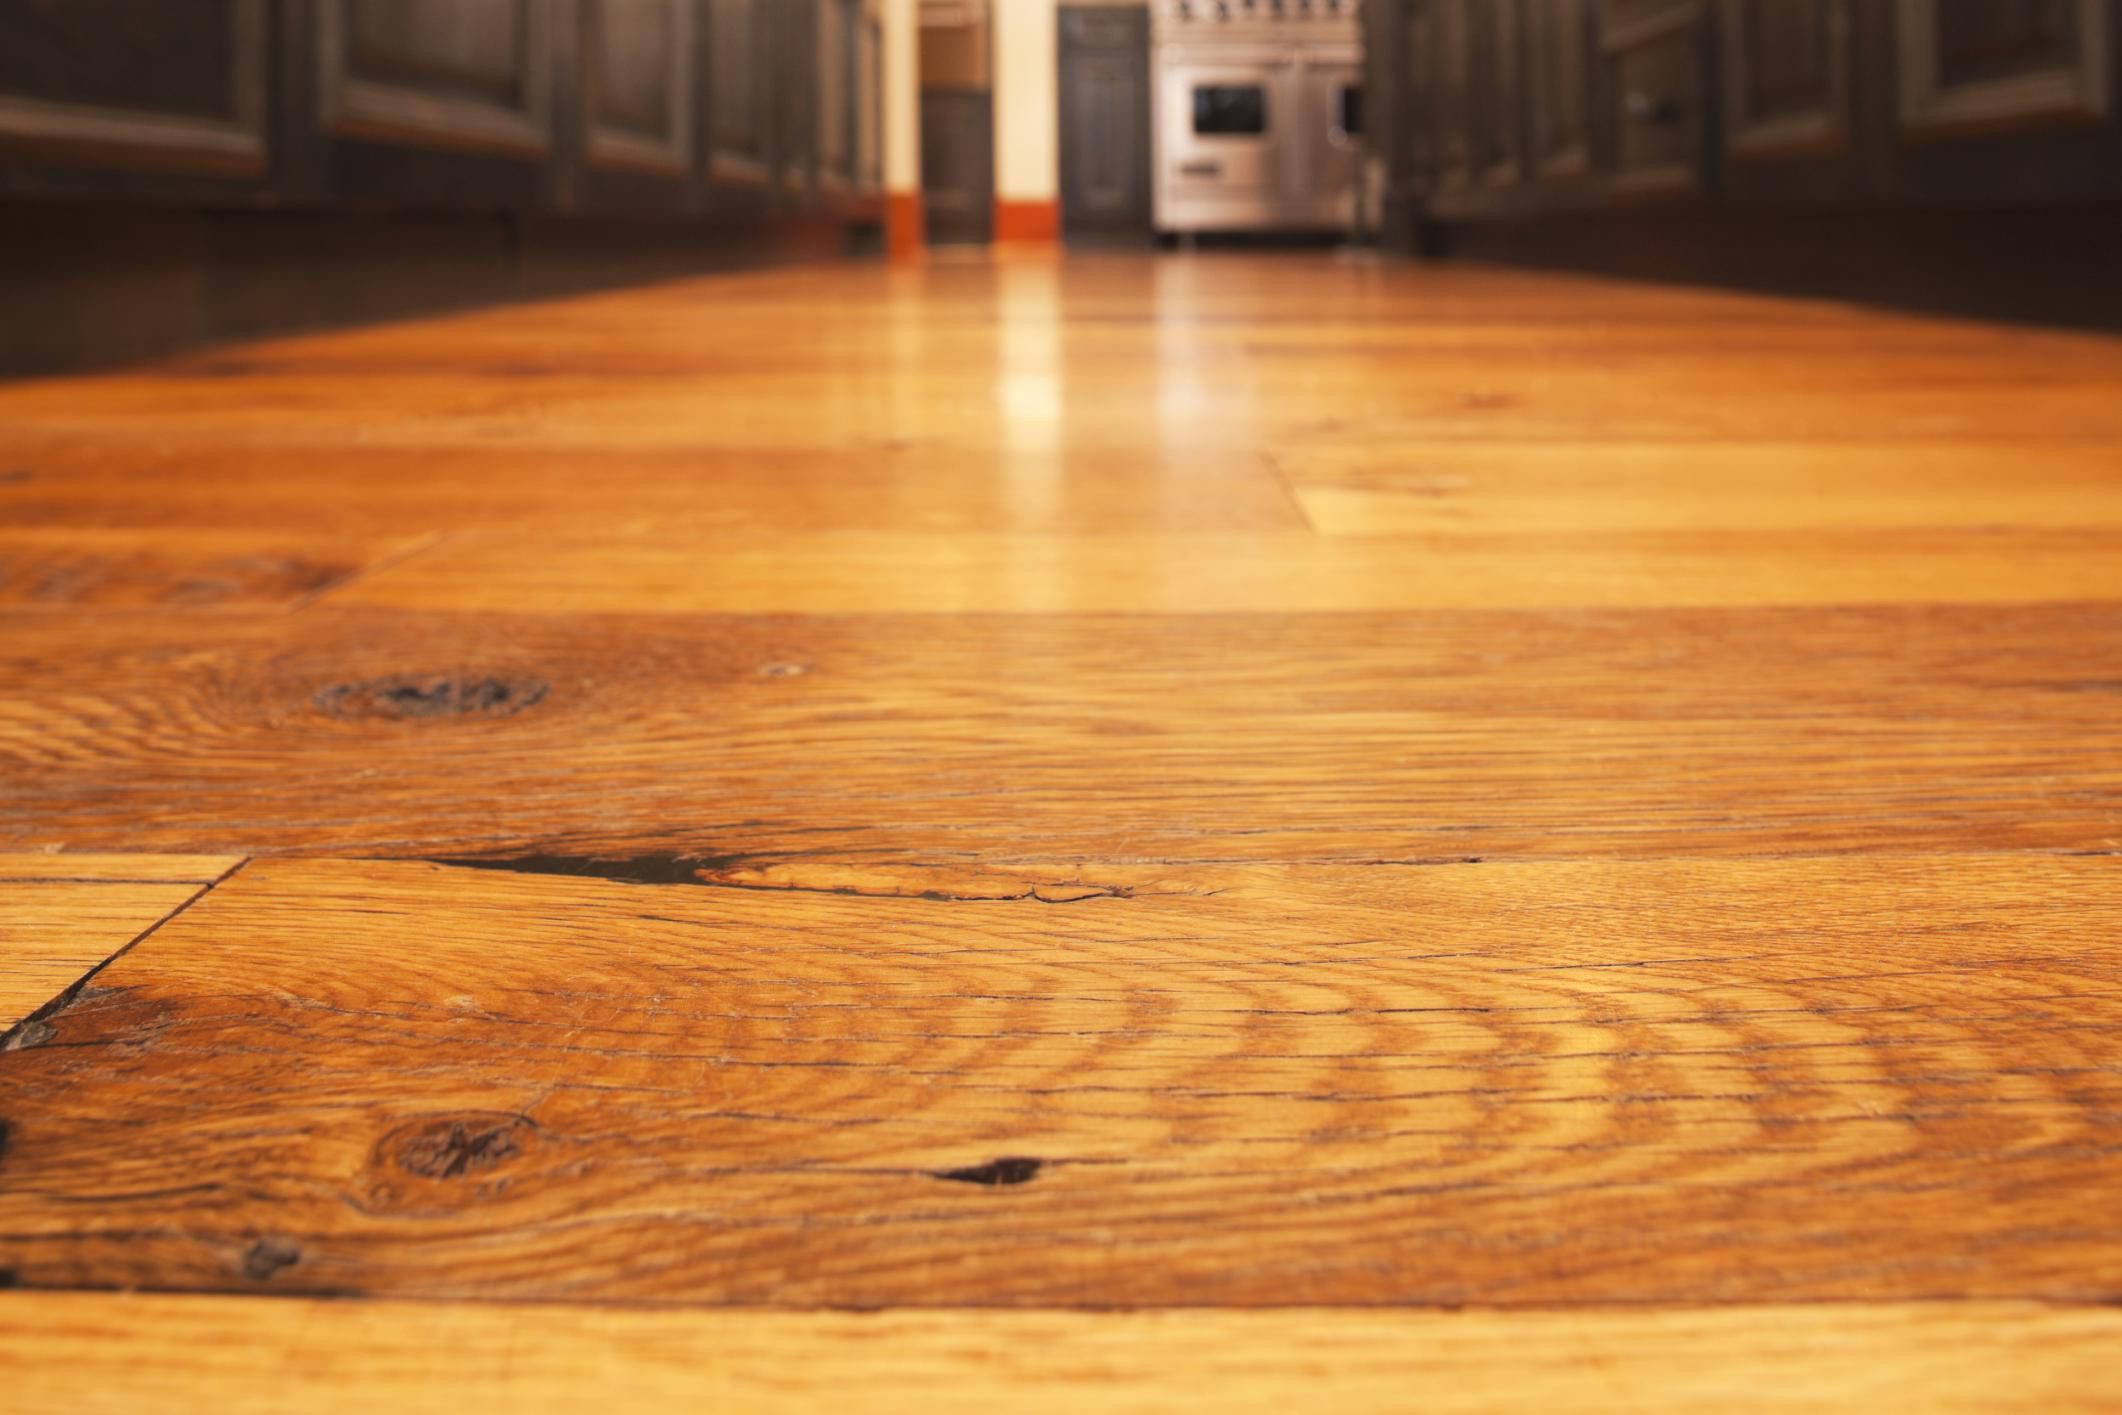 cost to refinish hardwood floors diy of how to sand hardwood floors throughout 185126347 56a49f3d5f9b58b7d0d7e154